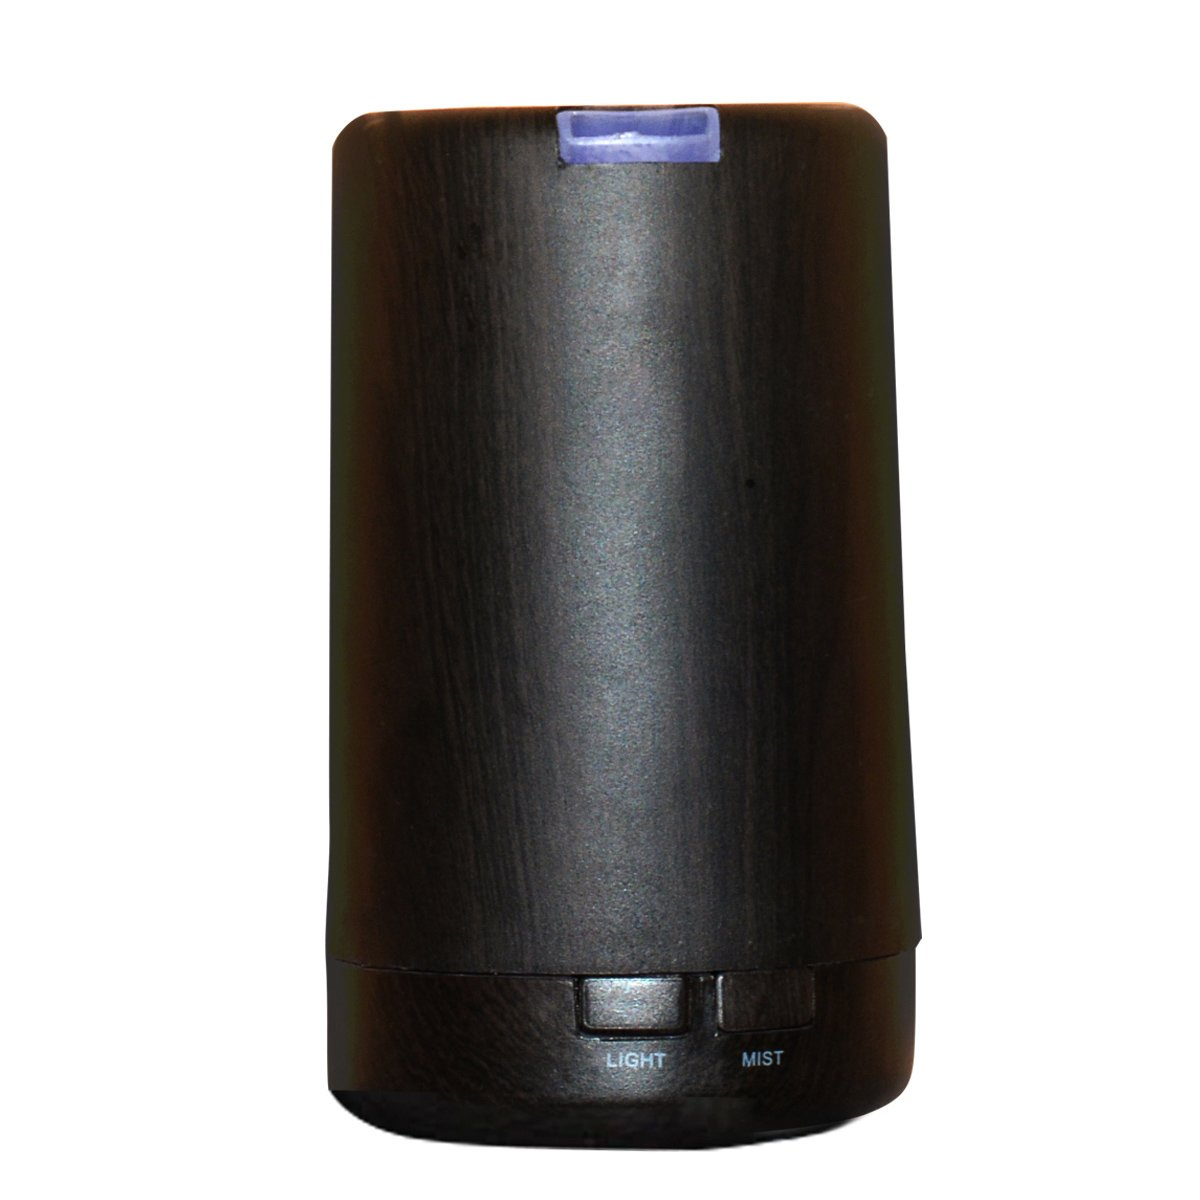 Youzhizun Essential Oil Diffuser 6 Color LED Lights Changing Cool Mist Humidifier for Home, Office, Baby Room, Bedroom, Yoga, Spa Hotel